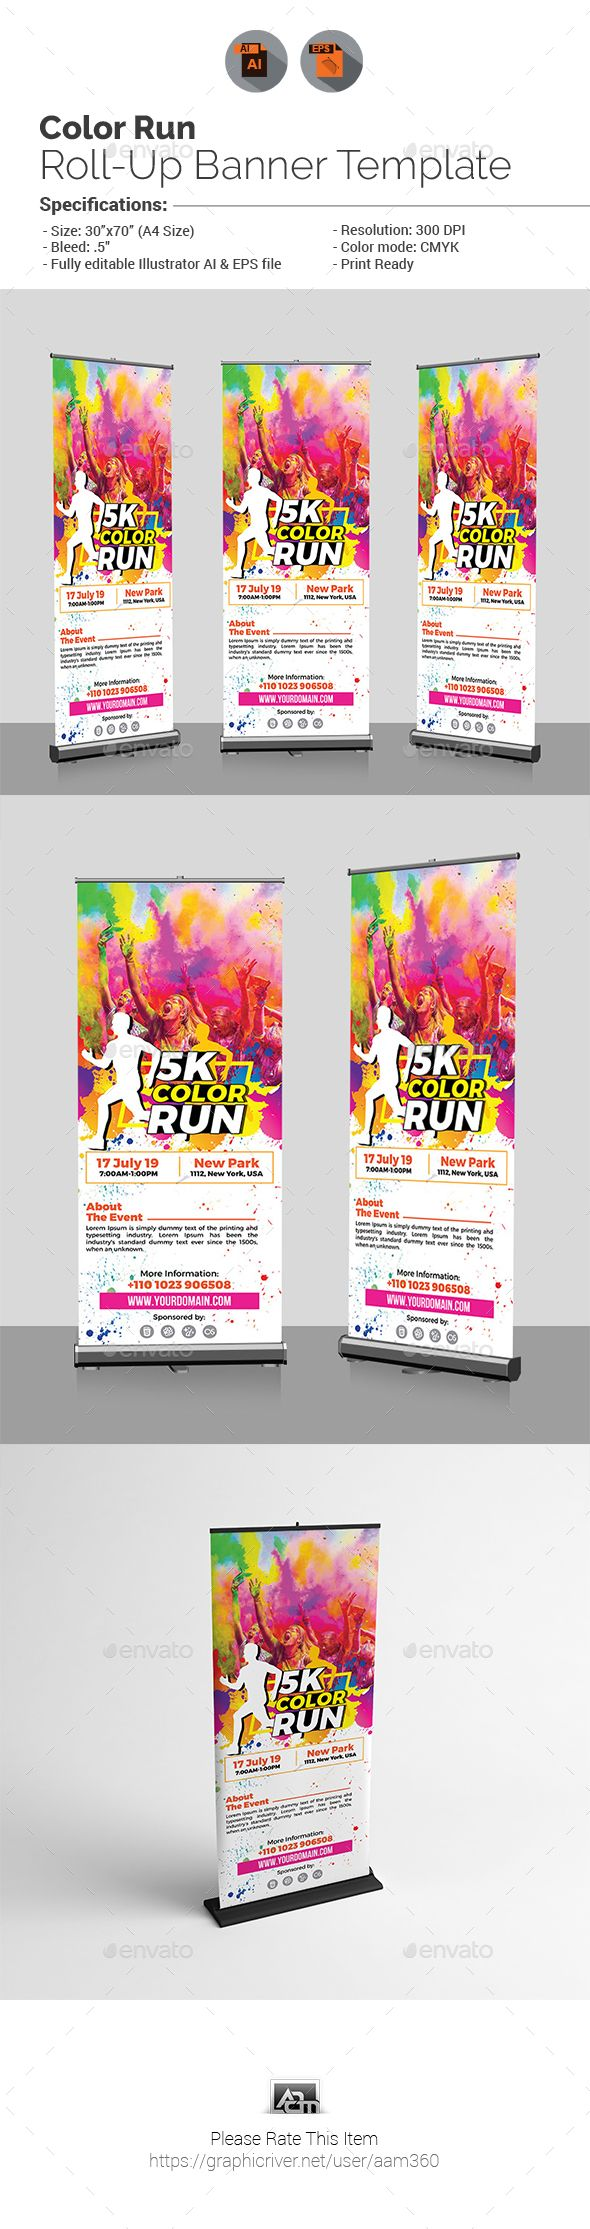 Color Run Fest Roll-Up Banner | Banners, Banner template and Ai ...